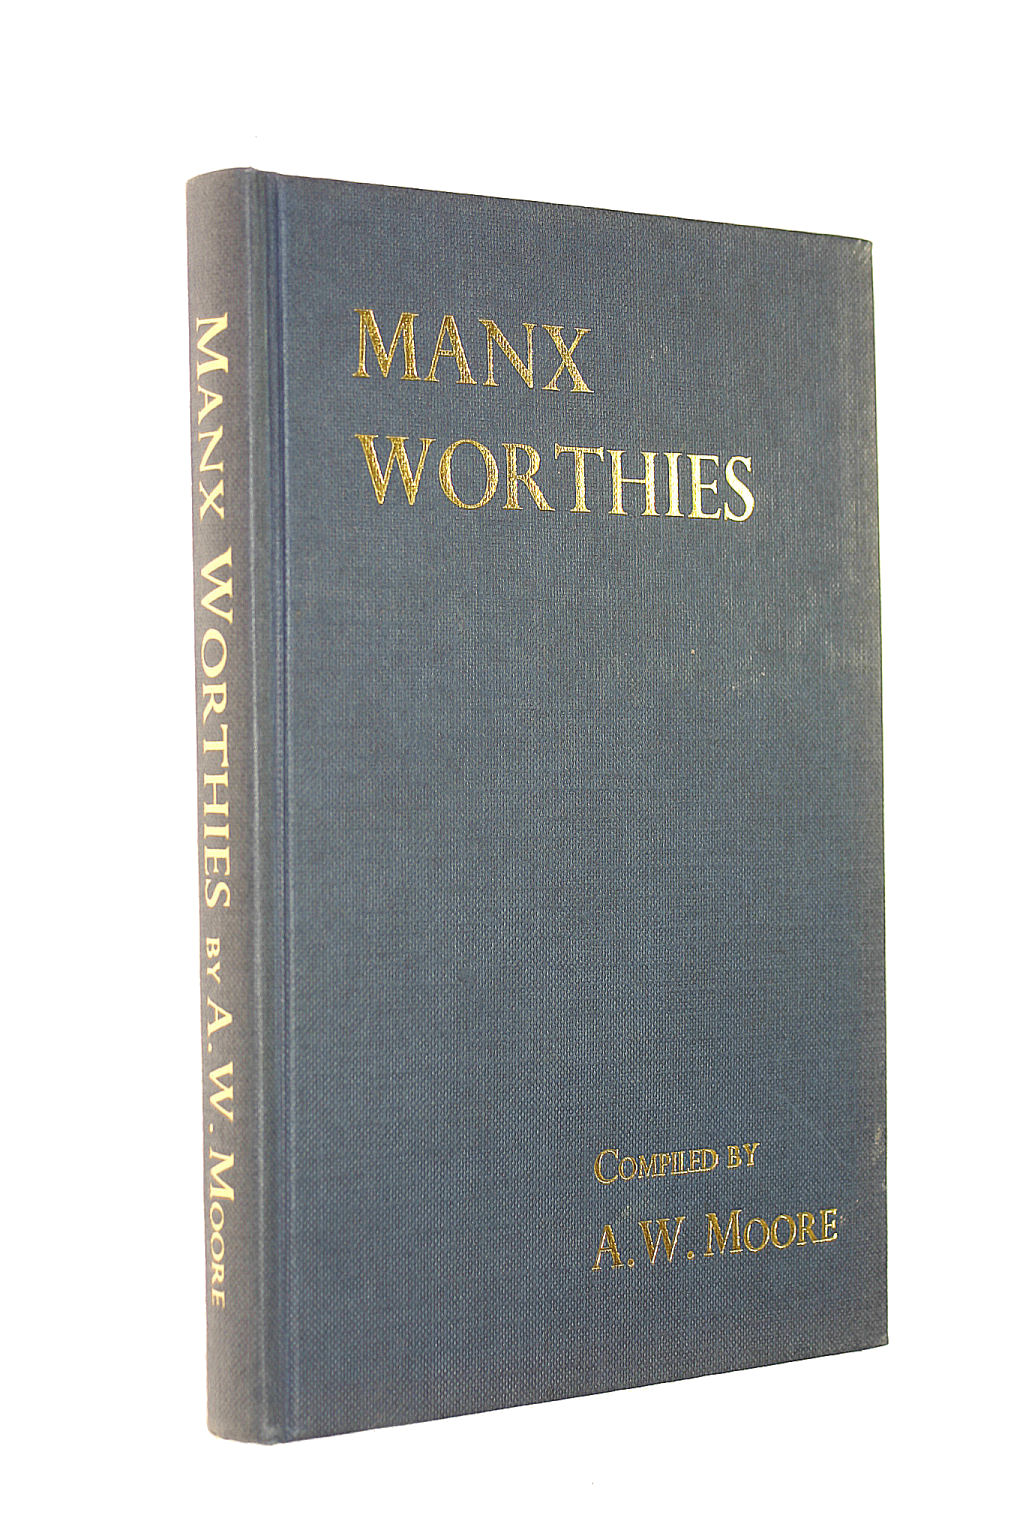 Image for Manx Worthies; or, Biographies of notable Manx men and women